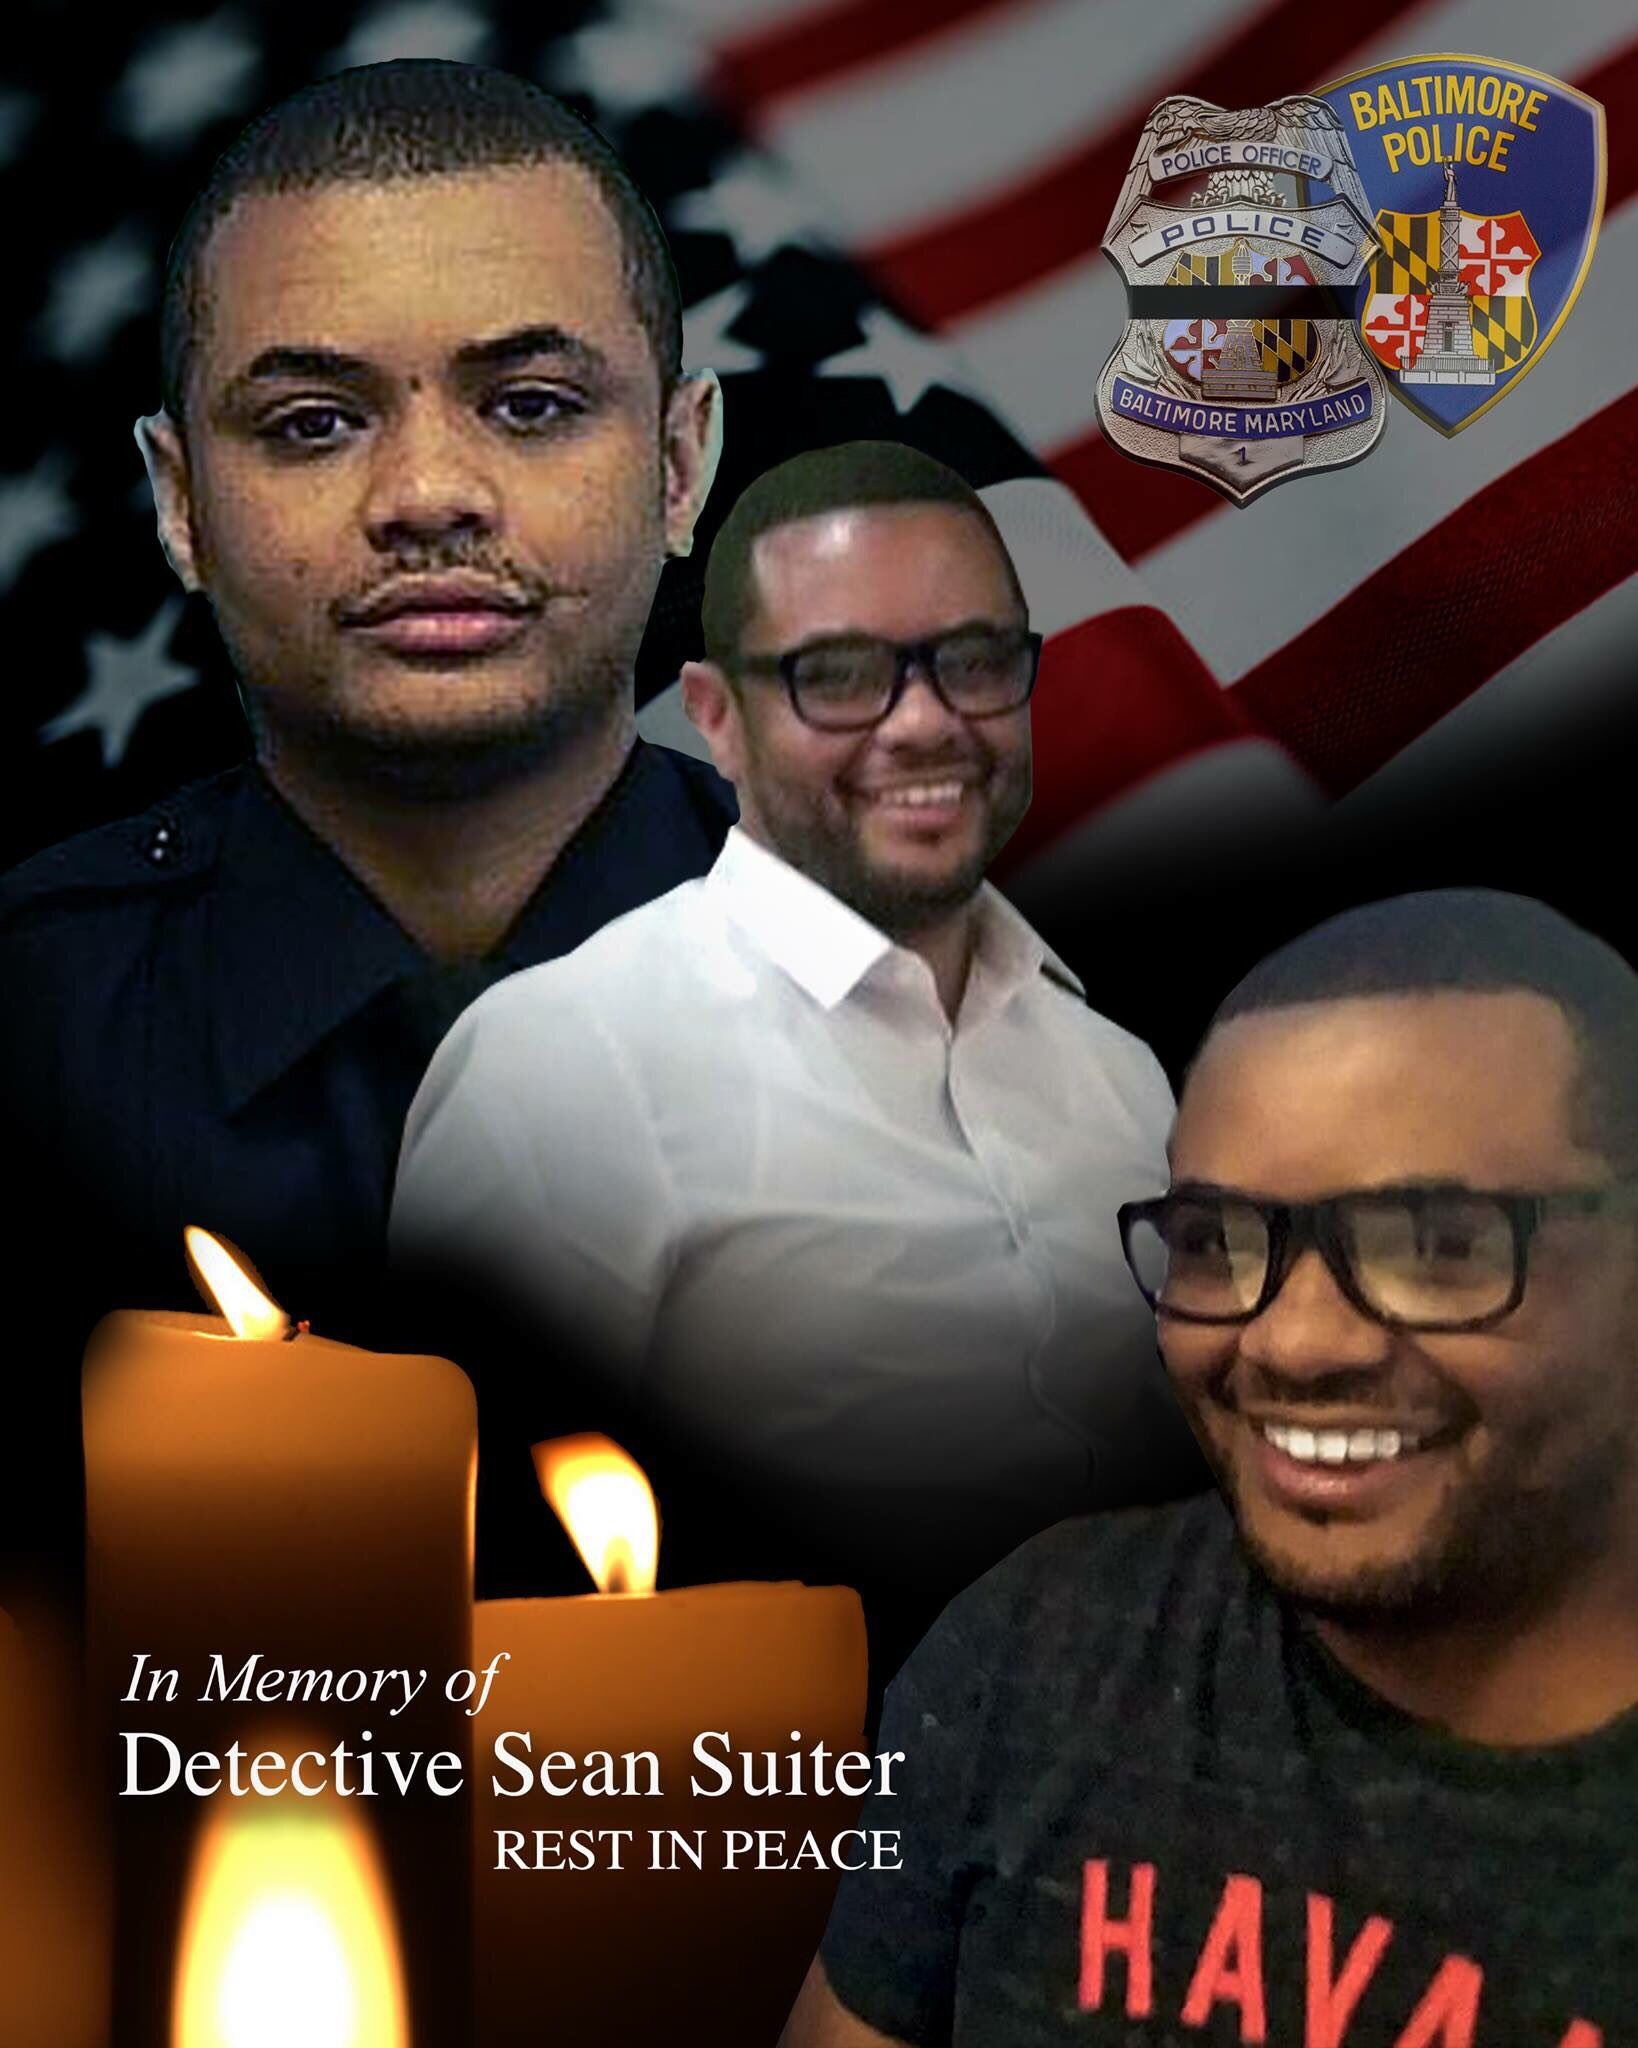 City Detective Sean Suiter (Courtesy: Baltimore Police Department)